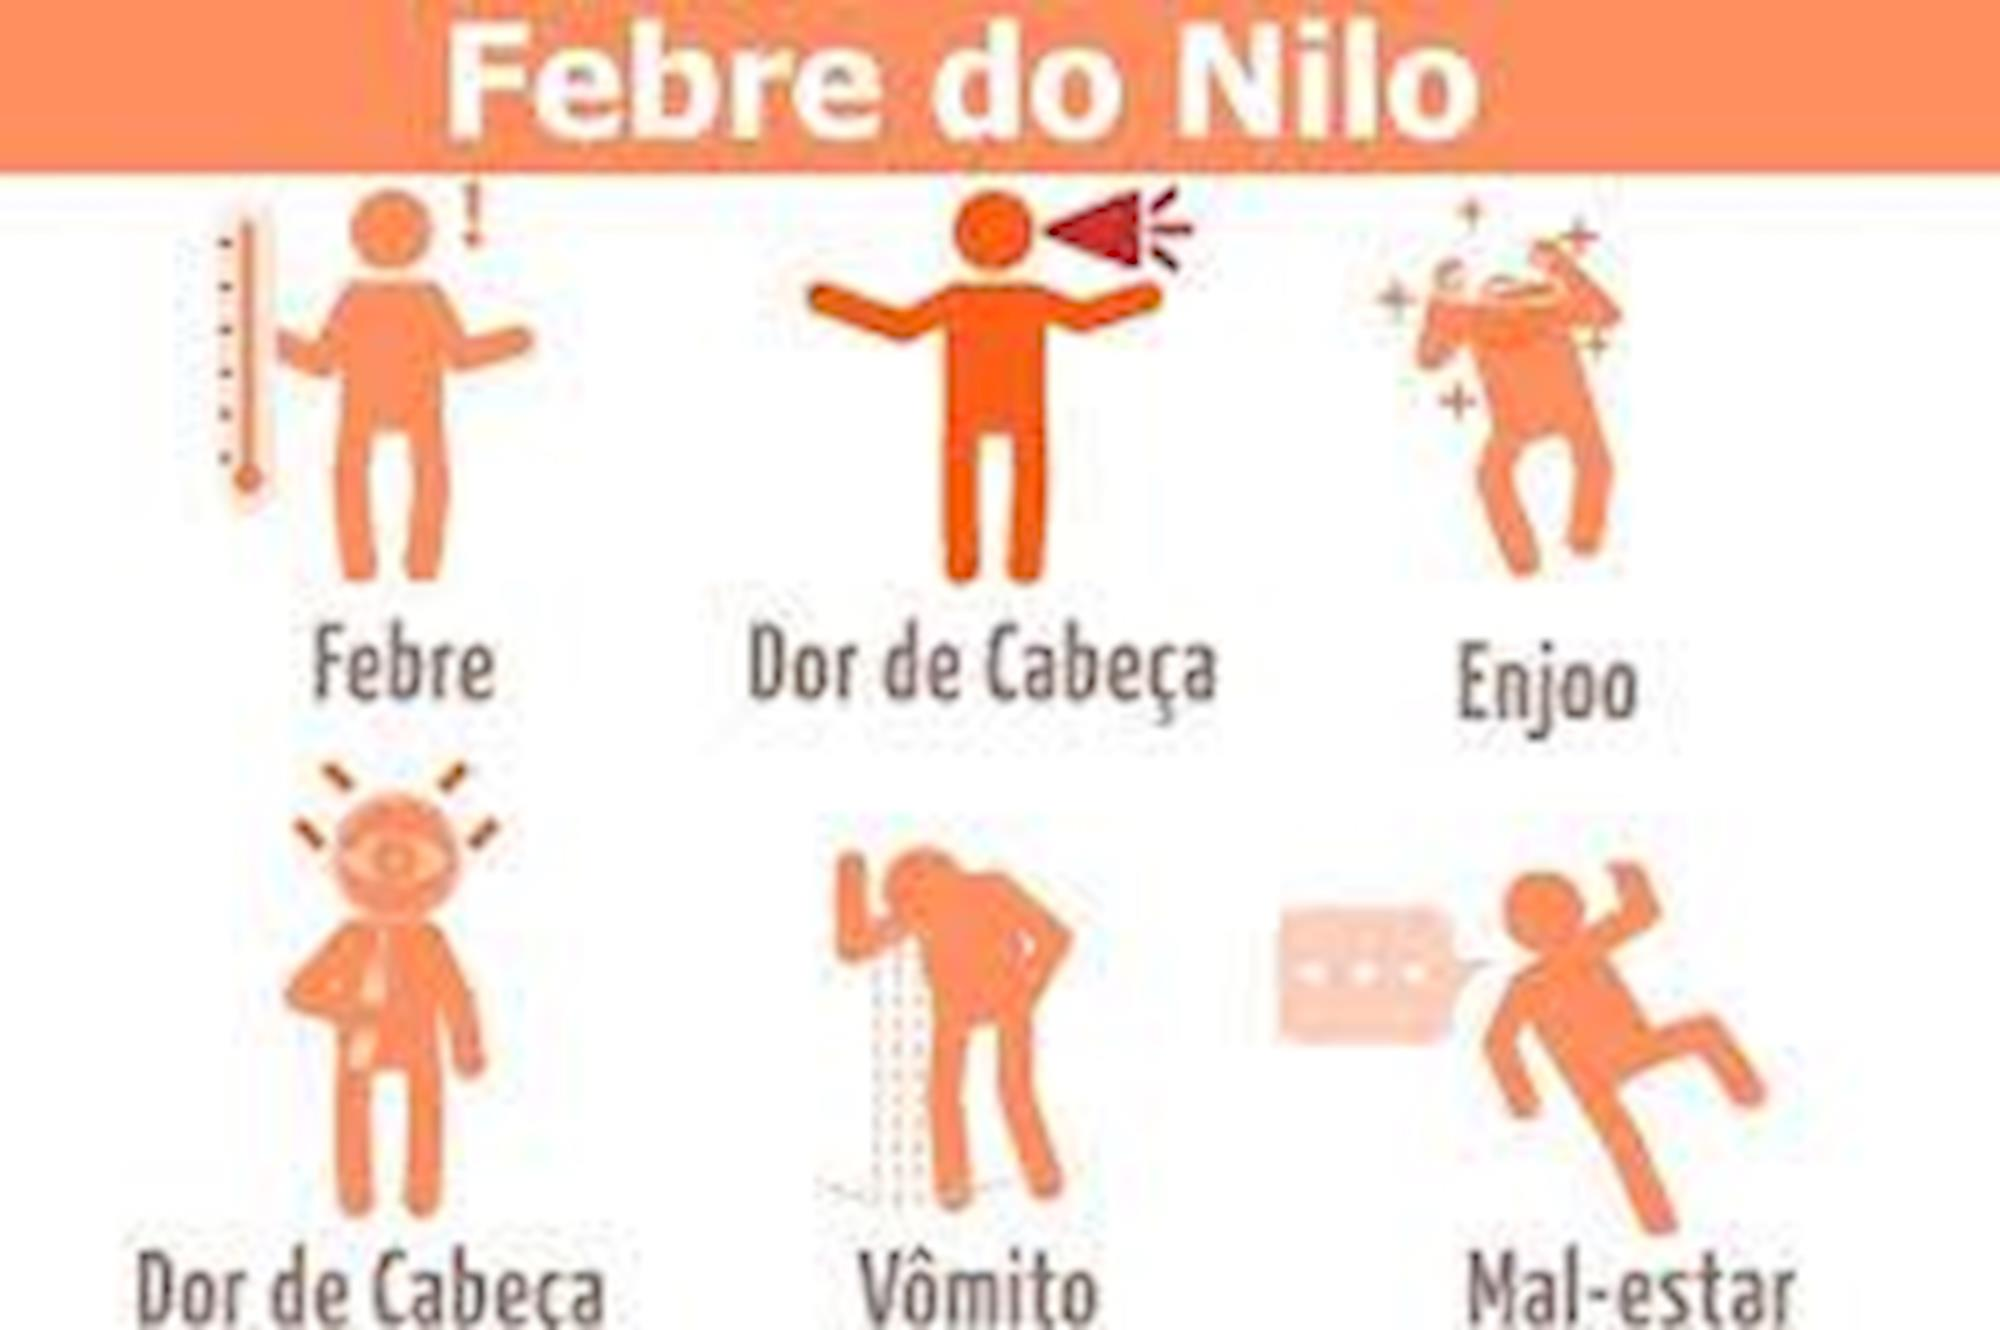 febre do nilo, 2018, imprensa,